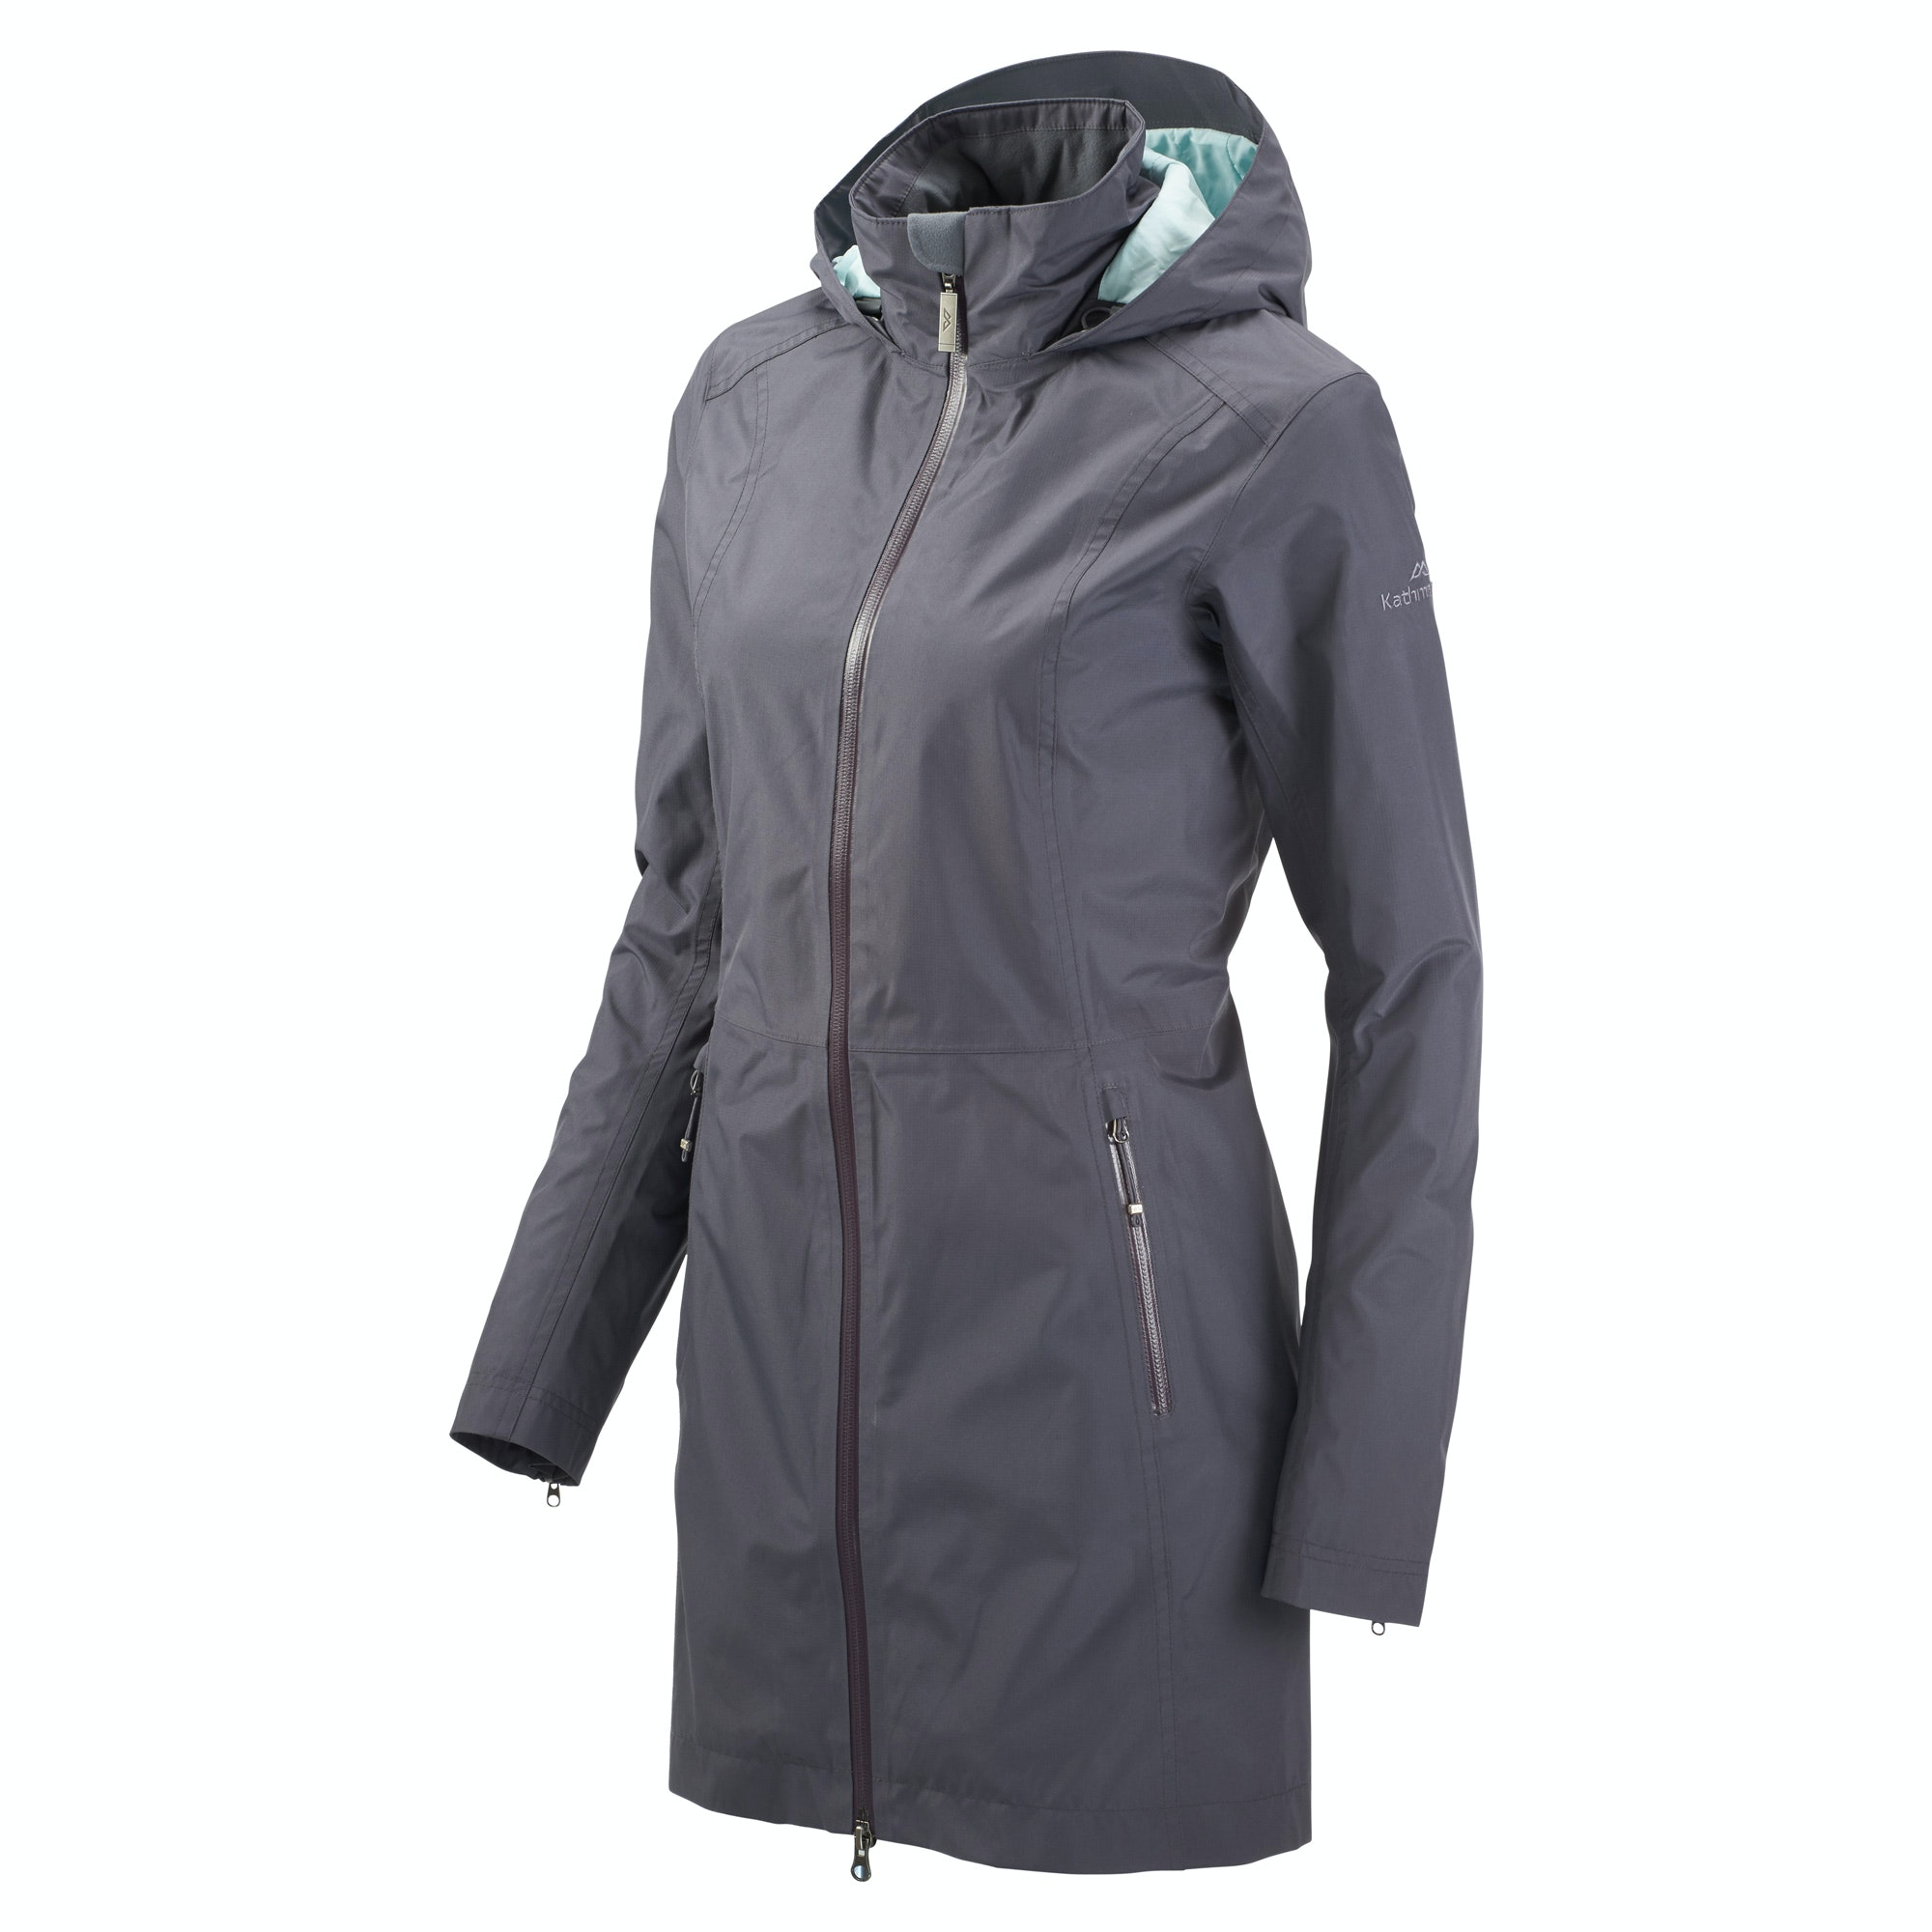 Womens goretex jacket